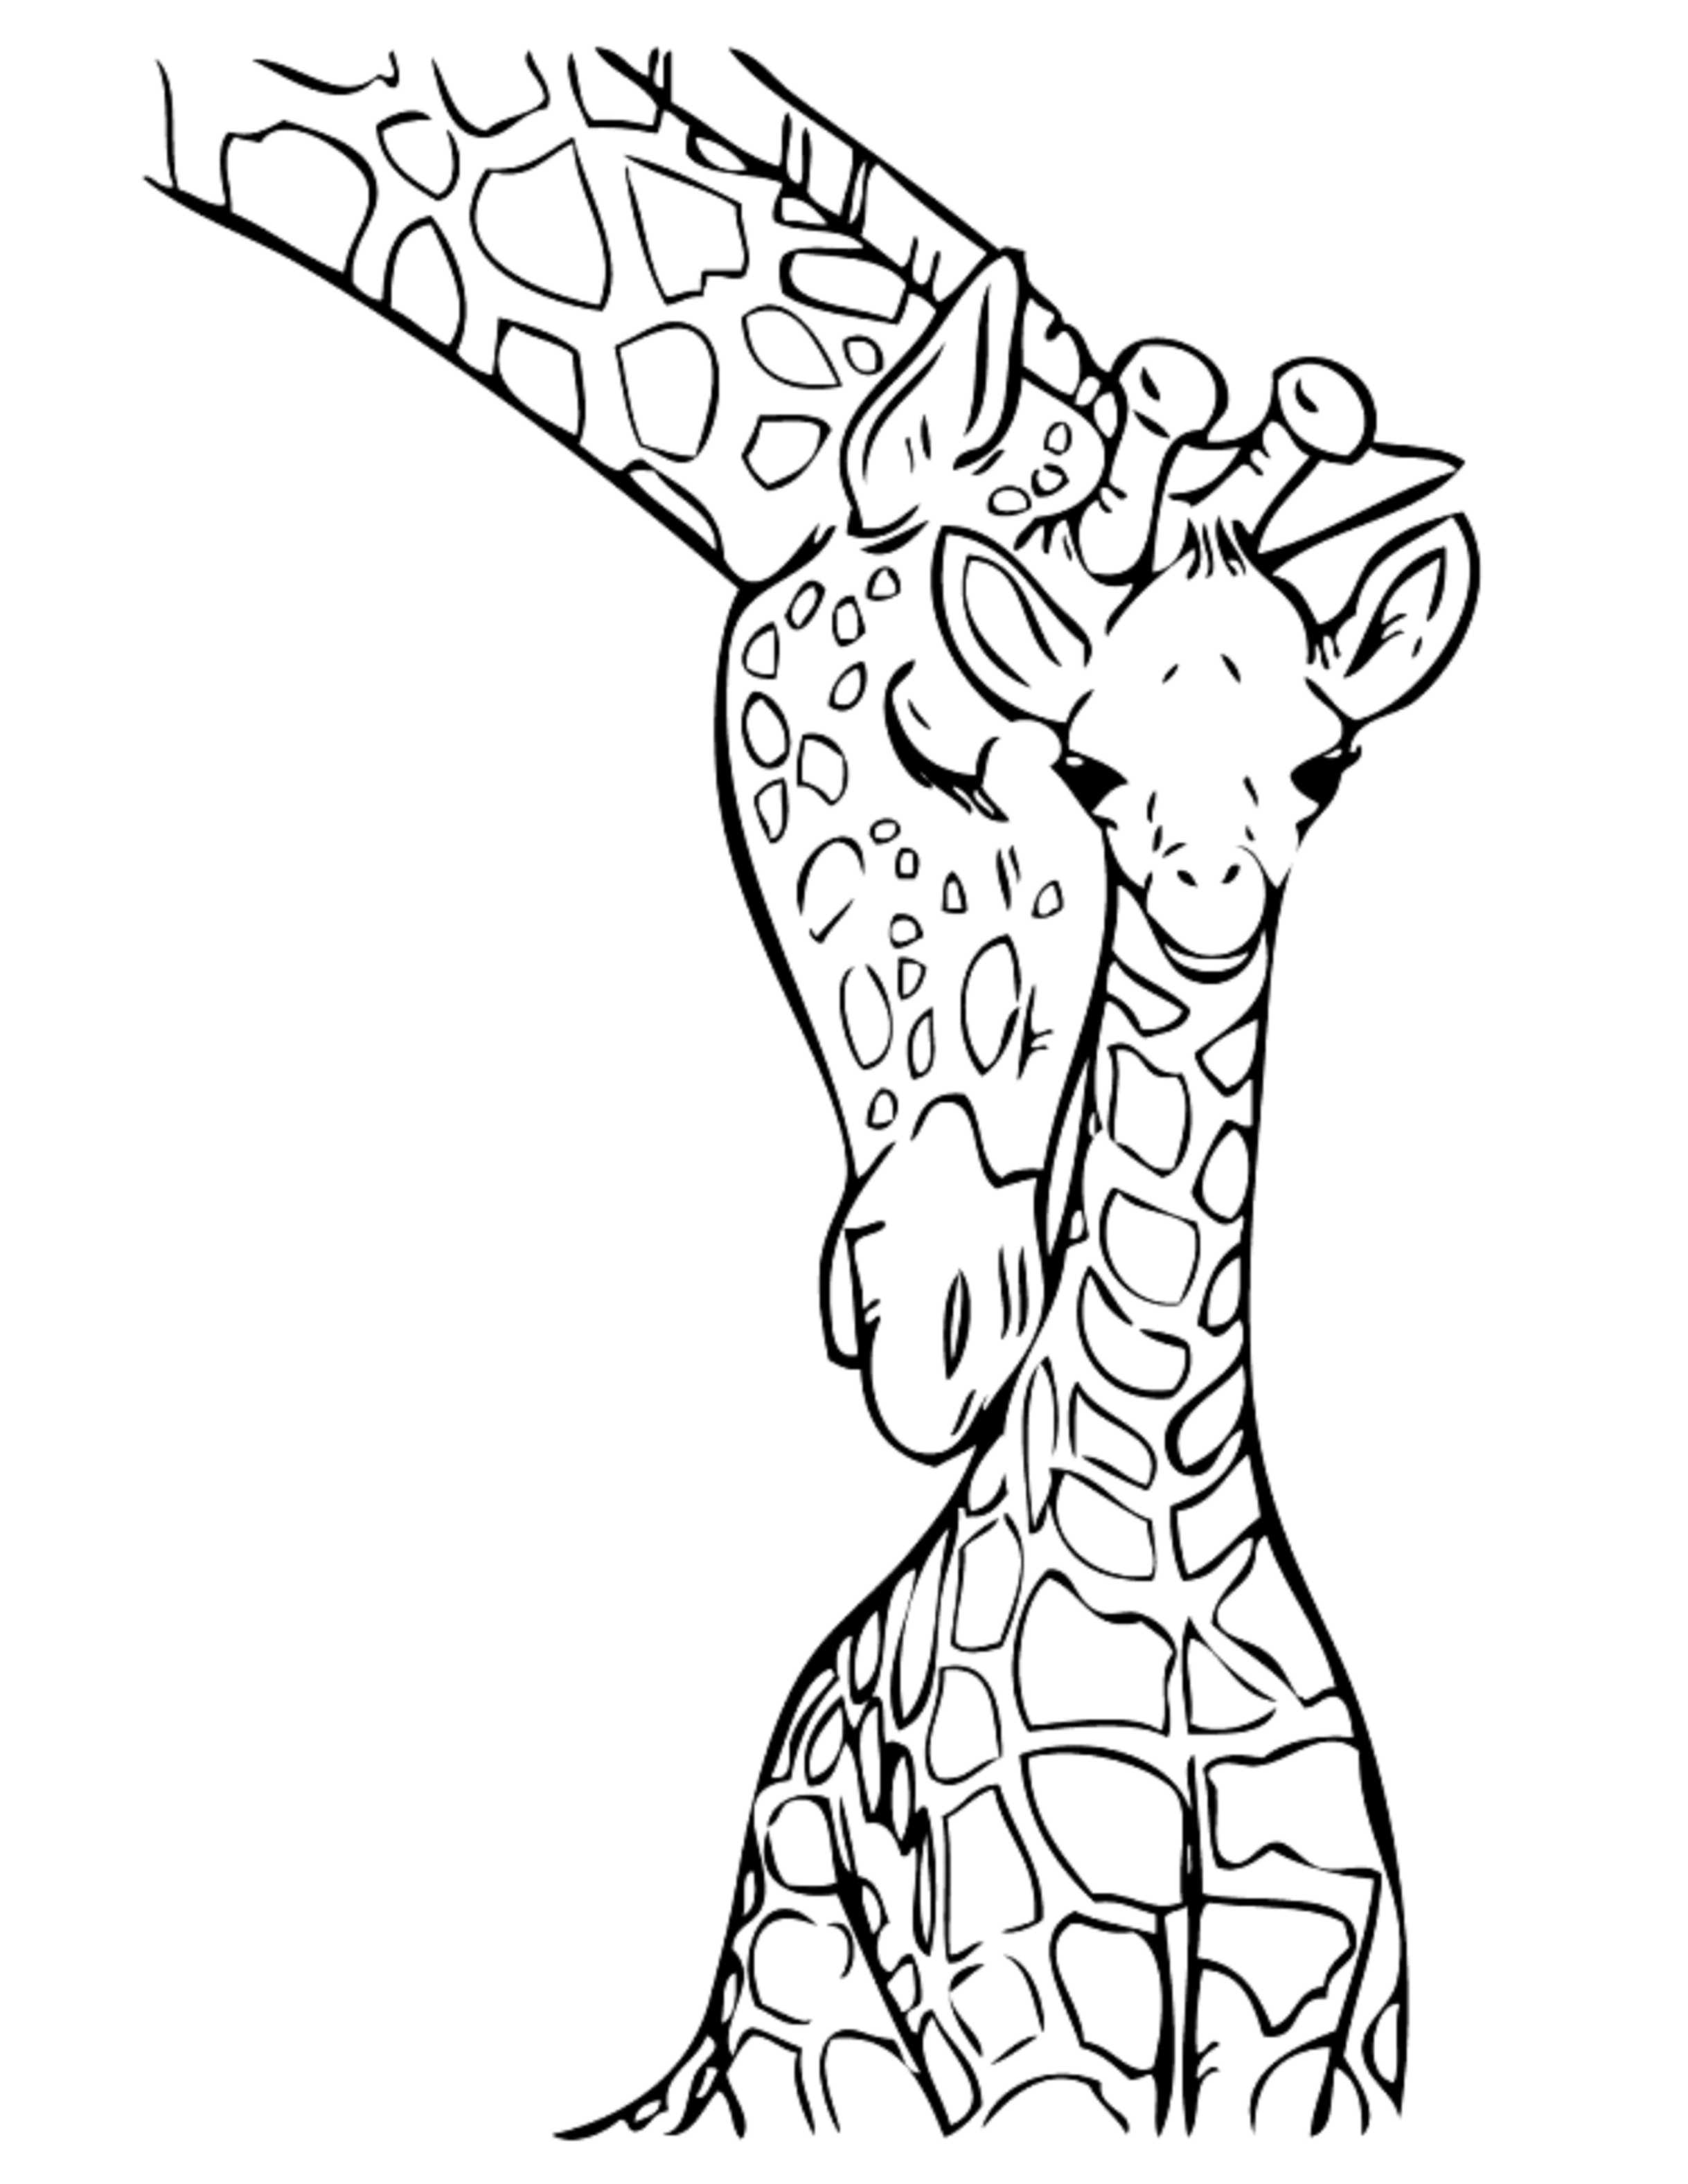 2437x3154 Giraffe Coloring Pages For Adults Colouring To Snazzy Page